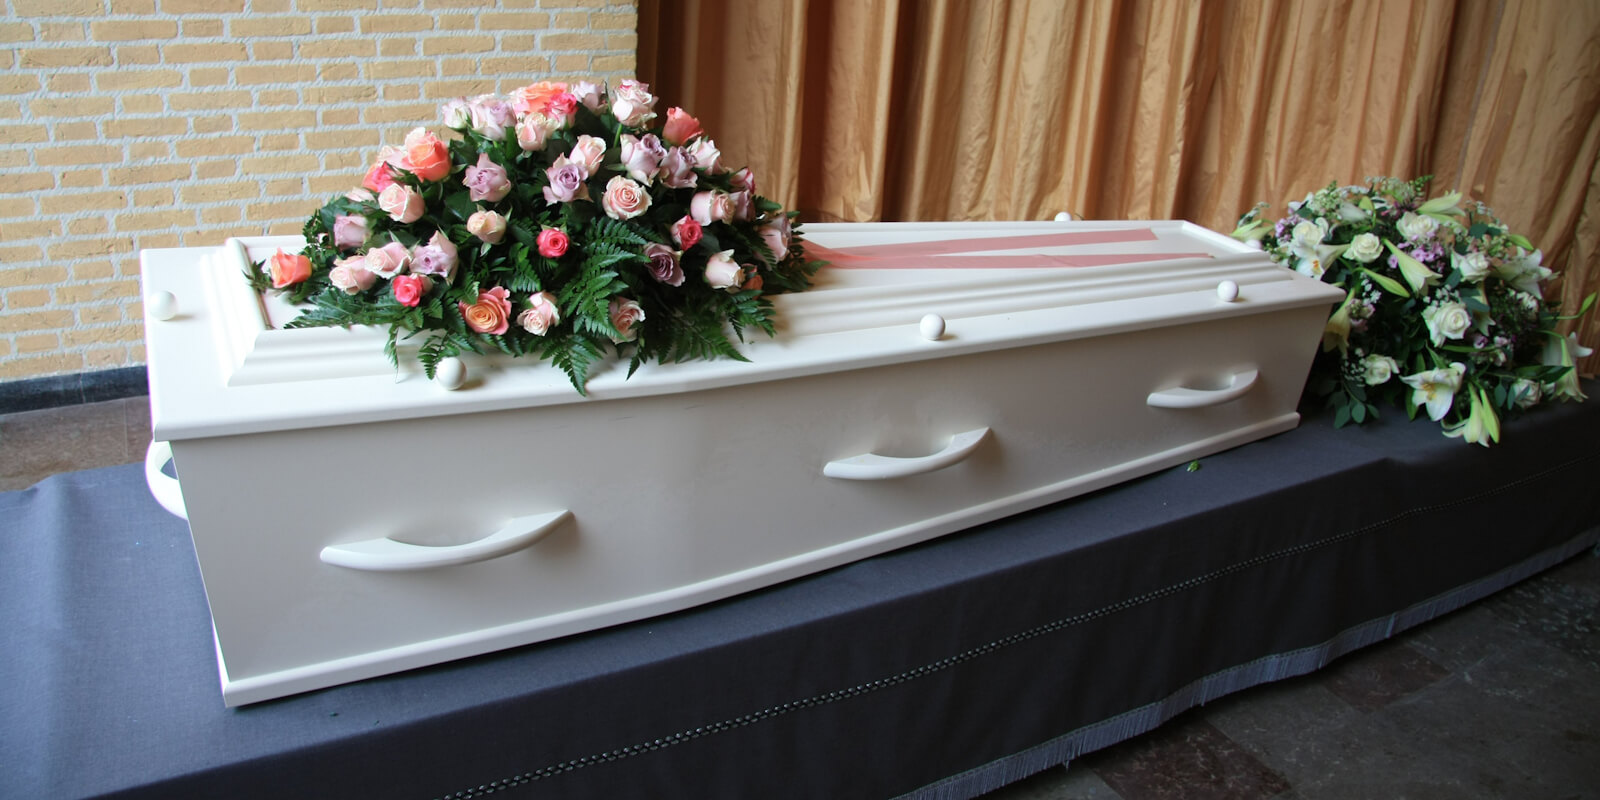 A white coffin with pink flowers at a funeral service